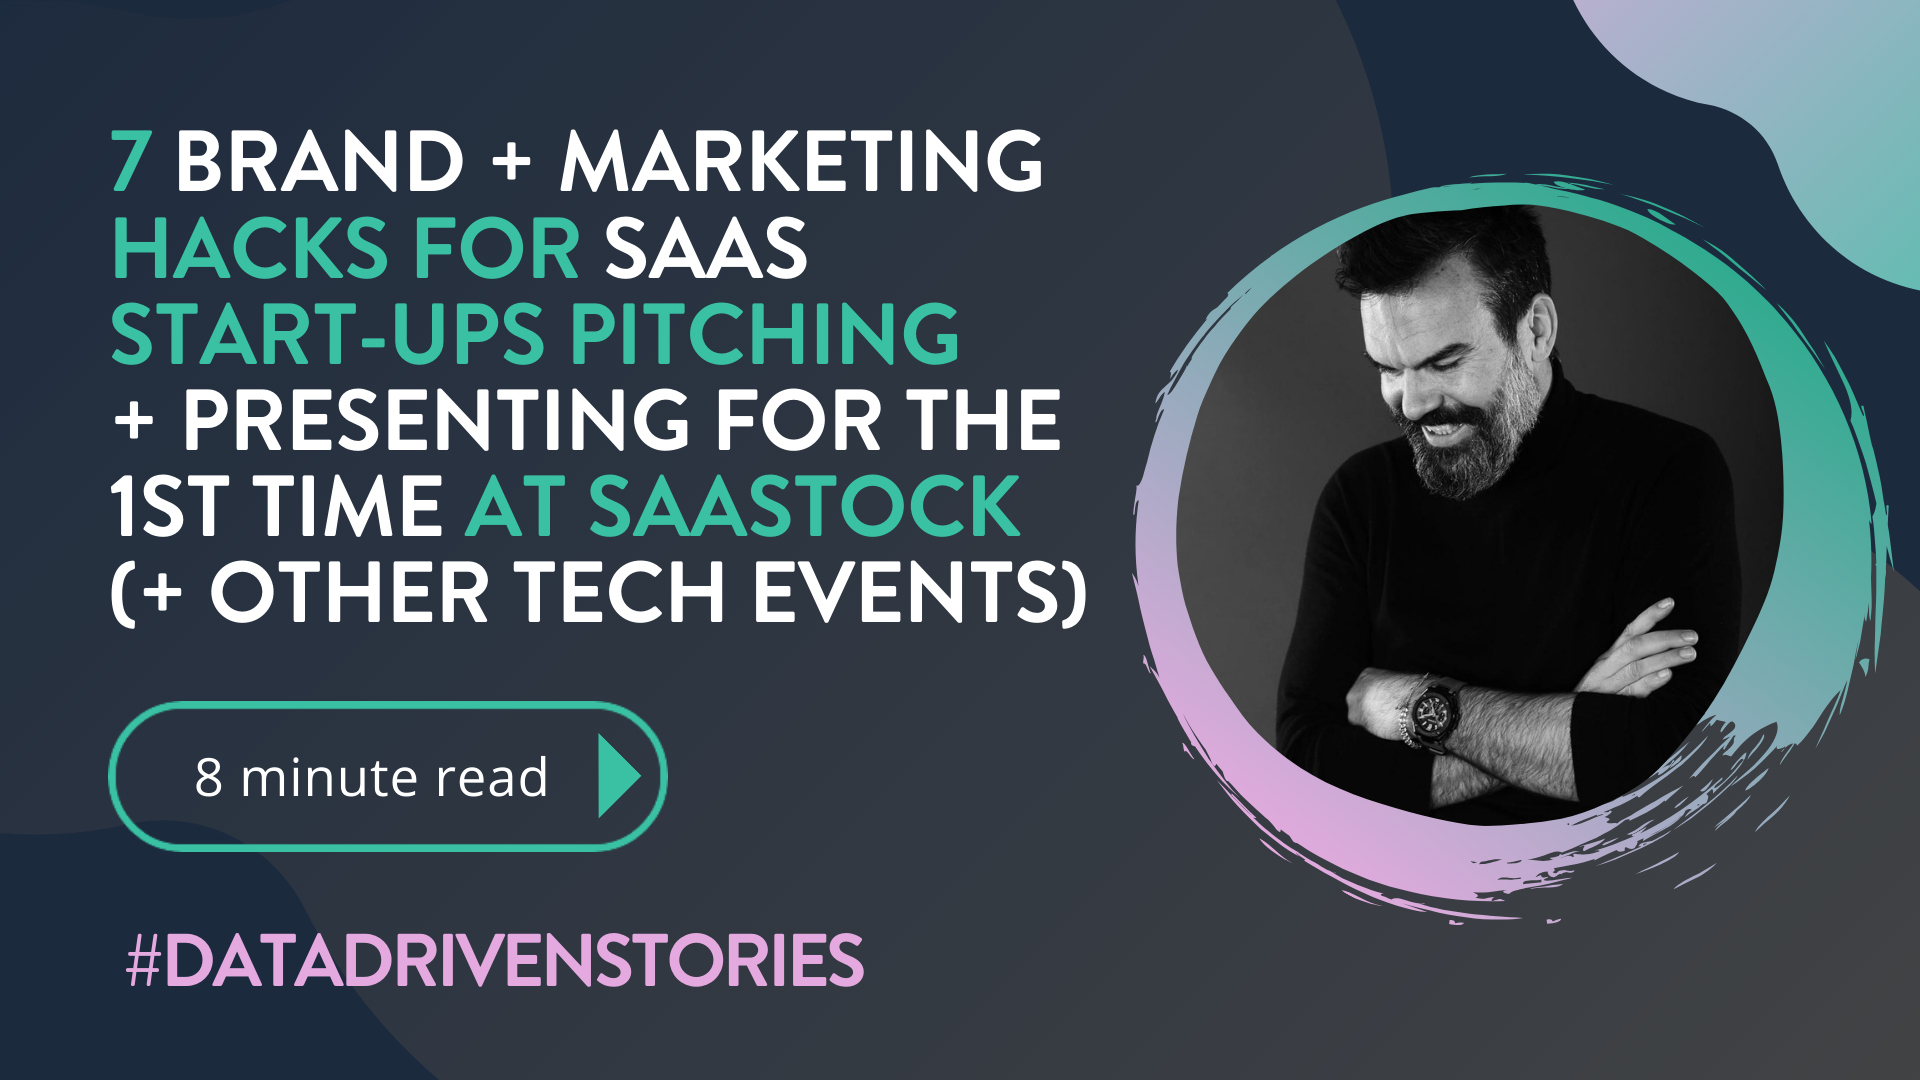 Read  our latest blog  on the brand + marketing challenges (and rewards), facing 'boot strapped' saas start-up pitching at   SaaStock   for the 1st time.  Enjoy!